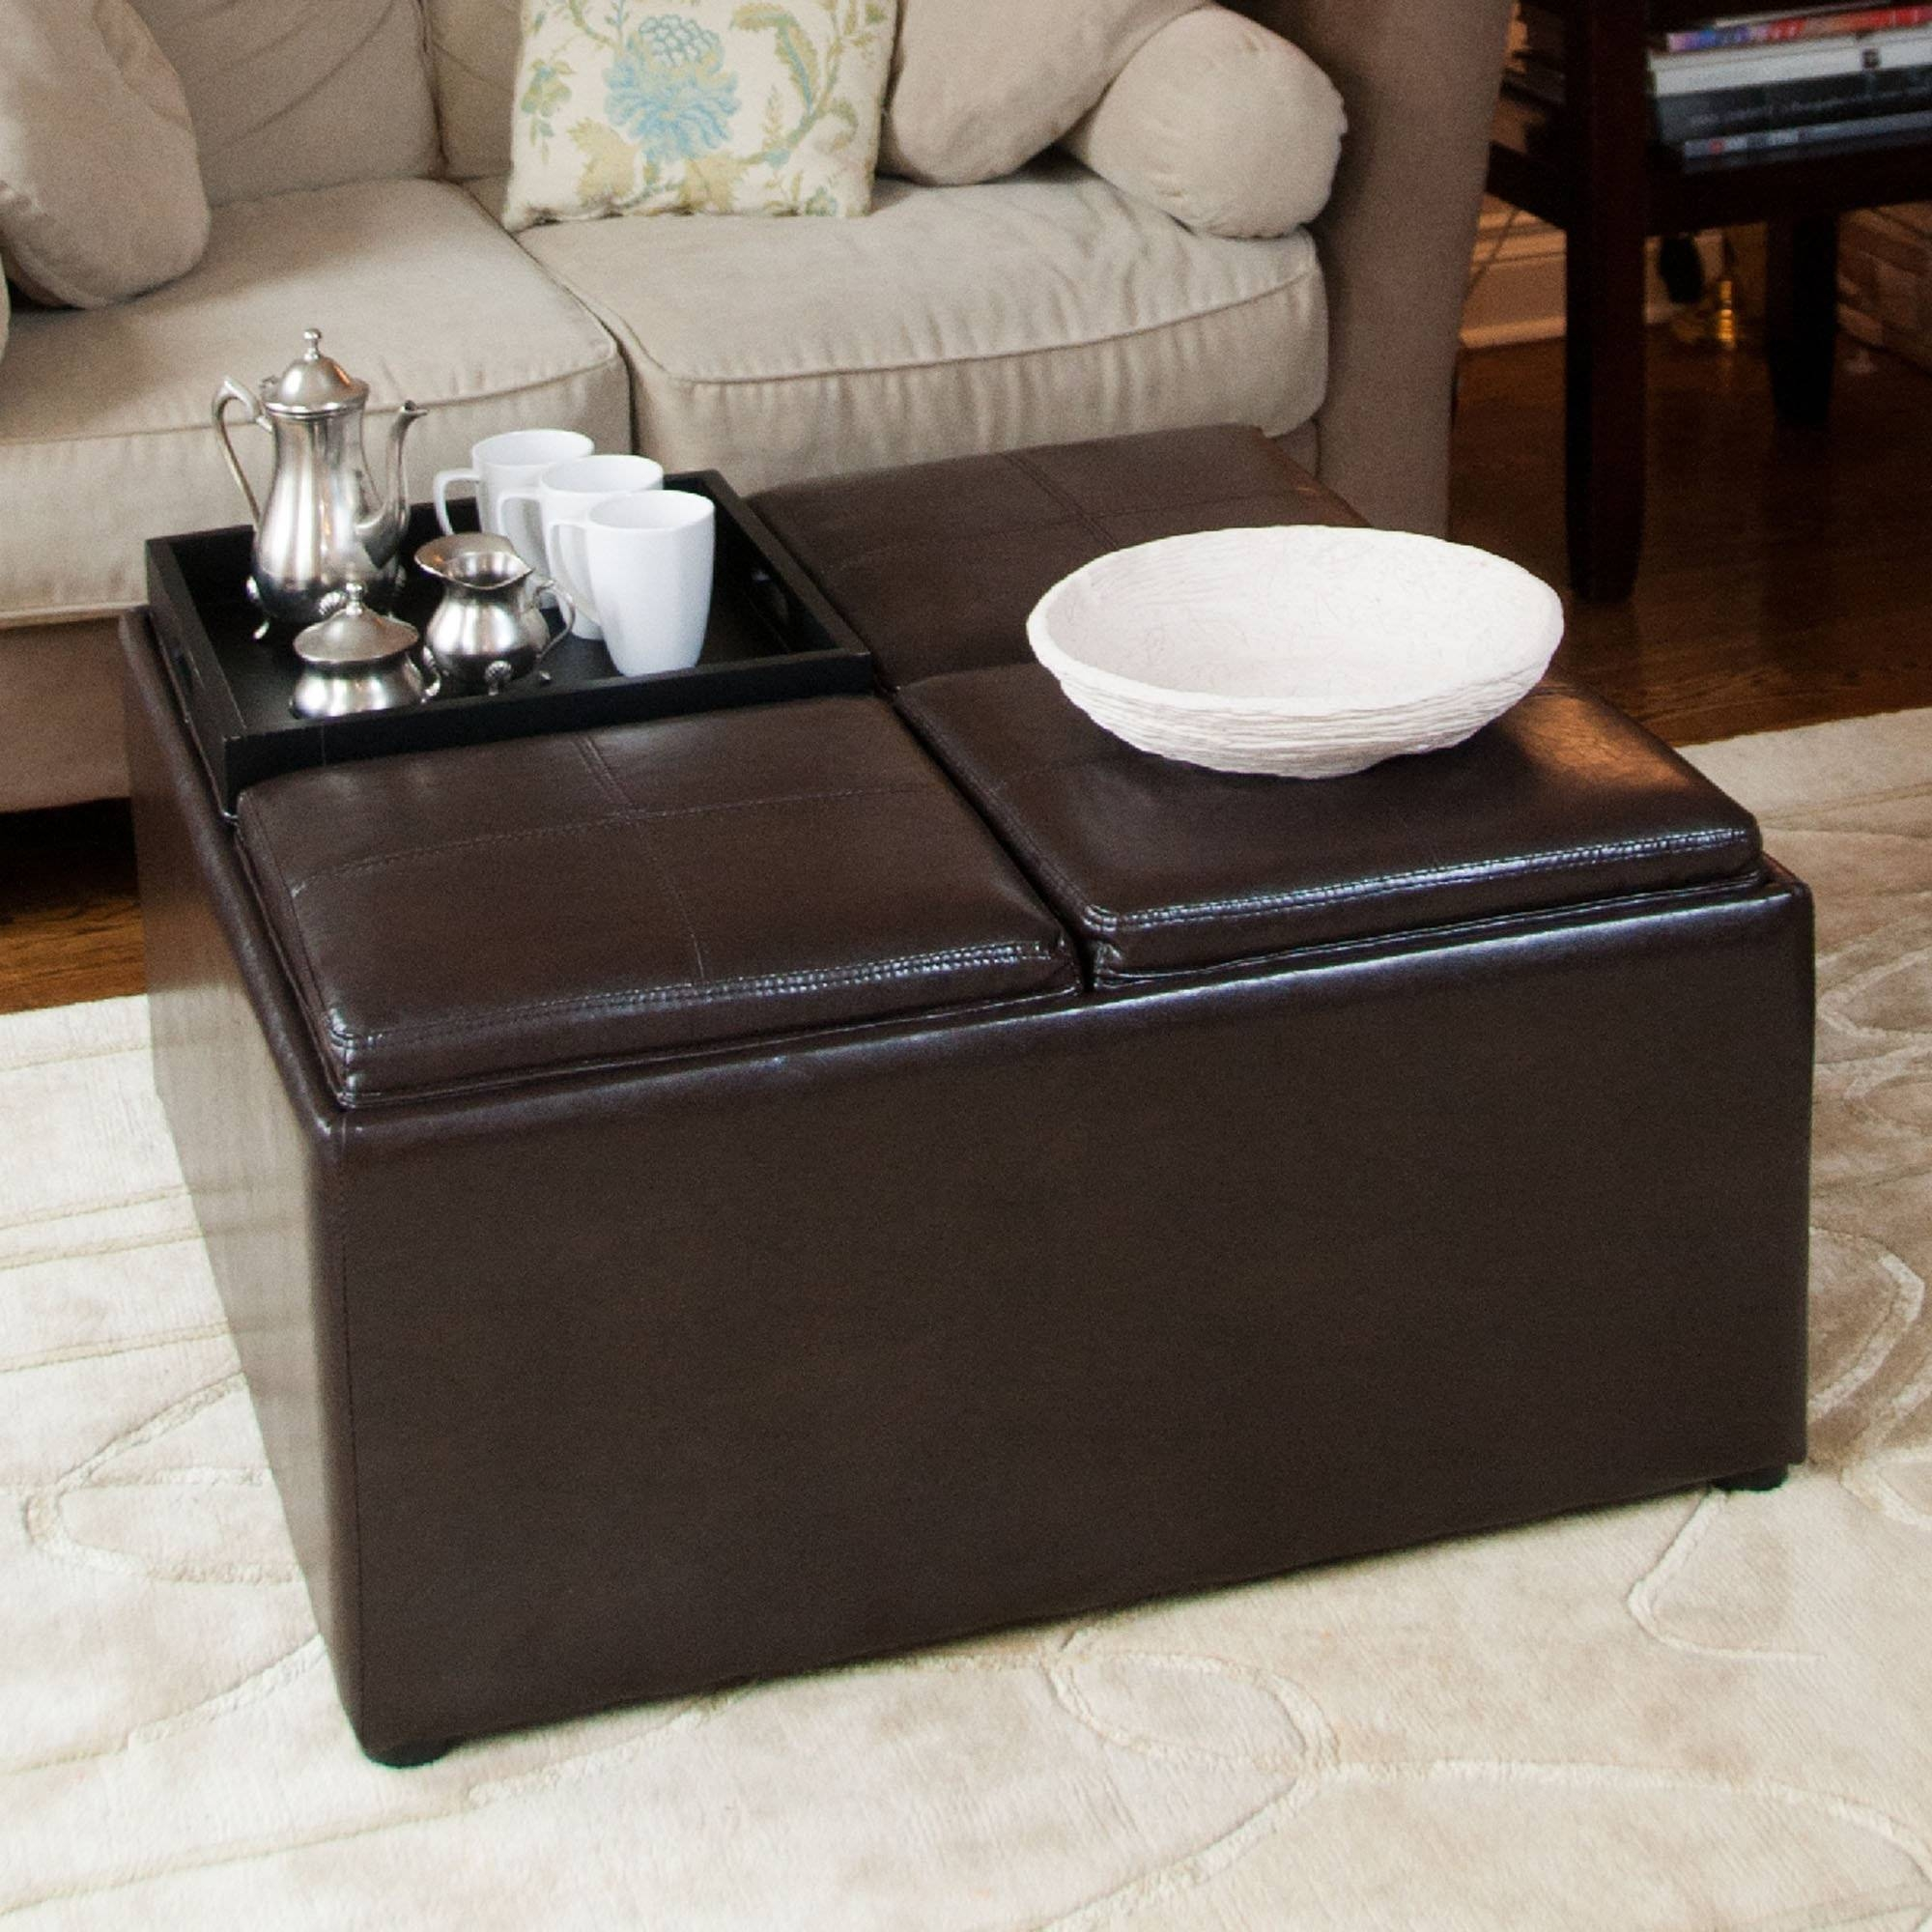 Brown Leather Coffee Table Storage Ottoman | Coffee Tables Decoration within Brown Leather Ottoman Coffee Tables With Storages (Image 9 of 30)